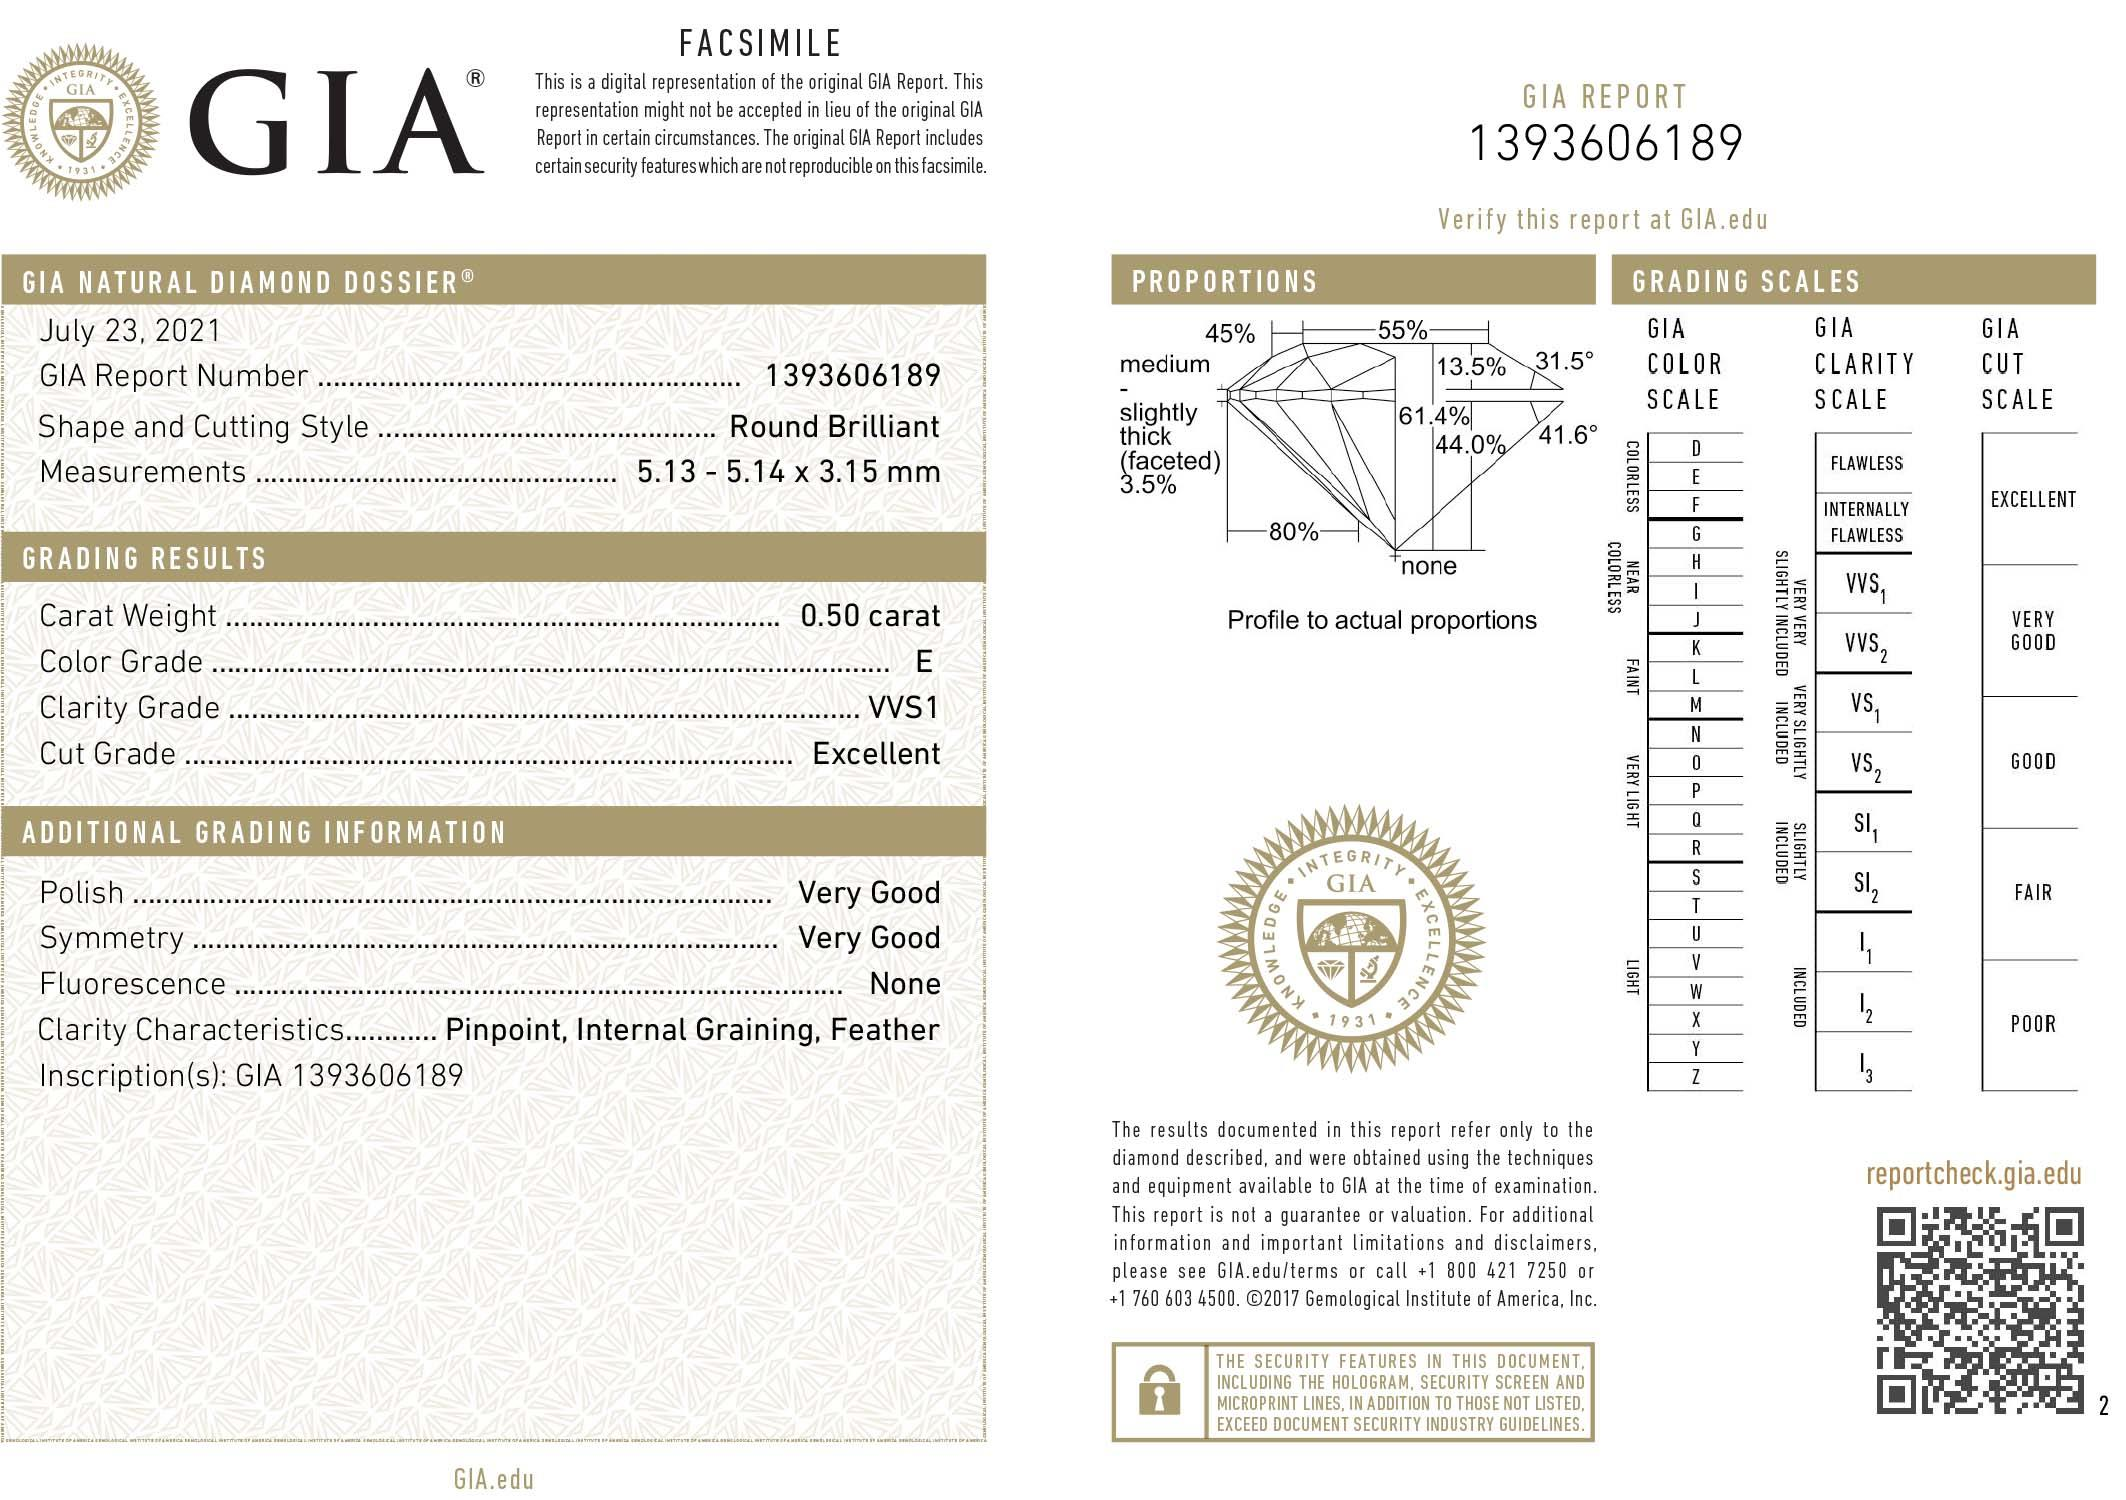 This is a 0.50 carat round shape, E color, VVS1 clarity natural diamond accompanied by a GIA grading report.